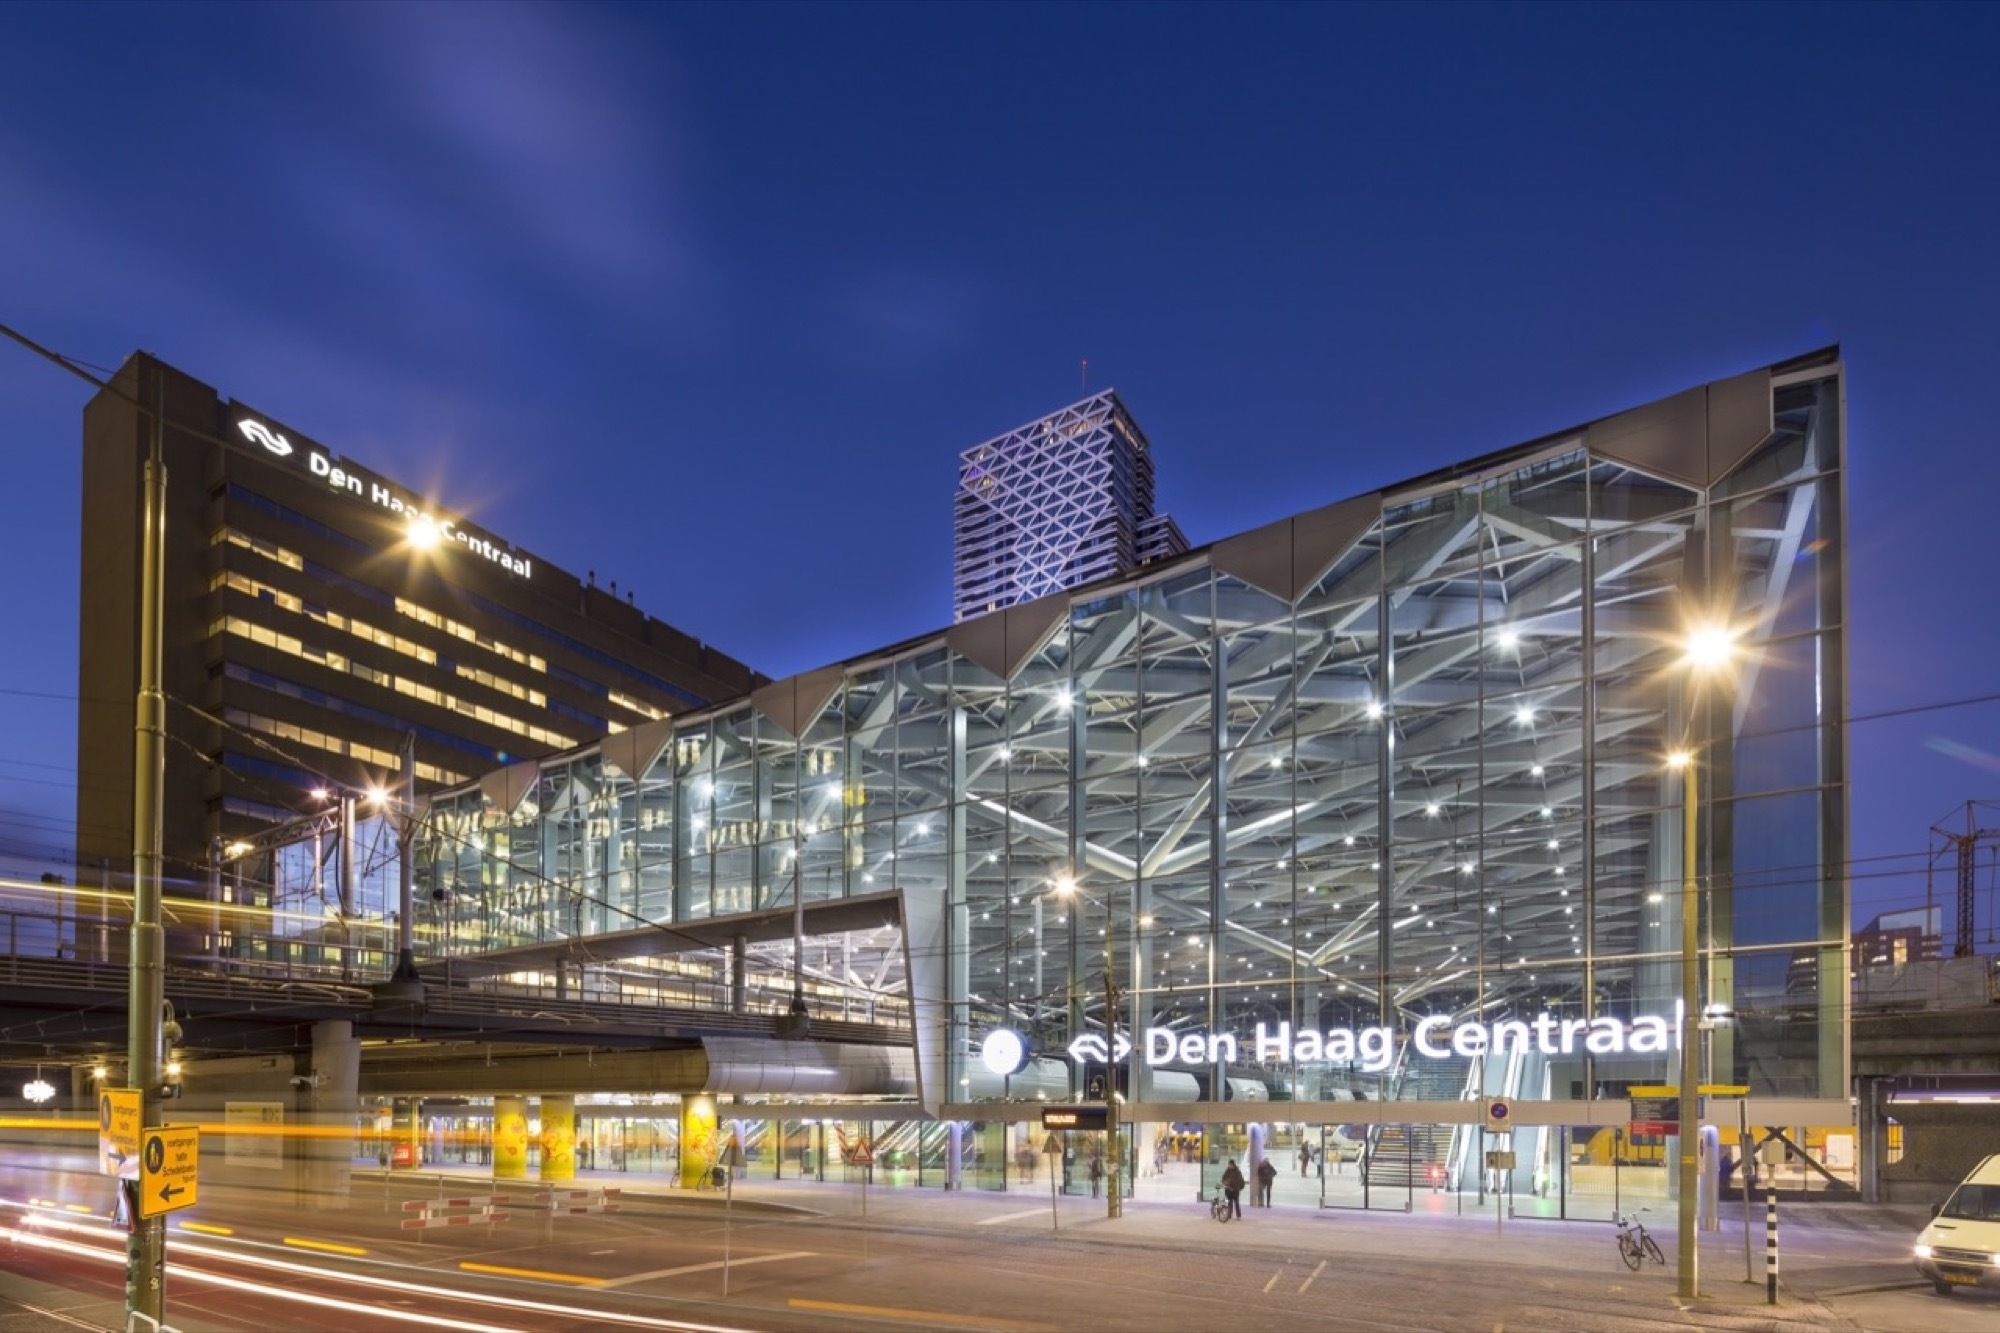 Architect Den Haag Gallery Of The Hague Central Station Benthem Crouwel